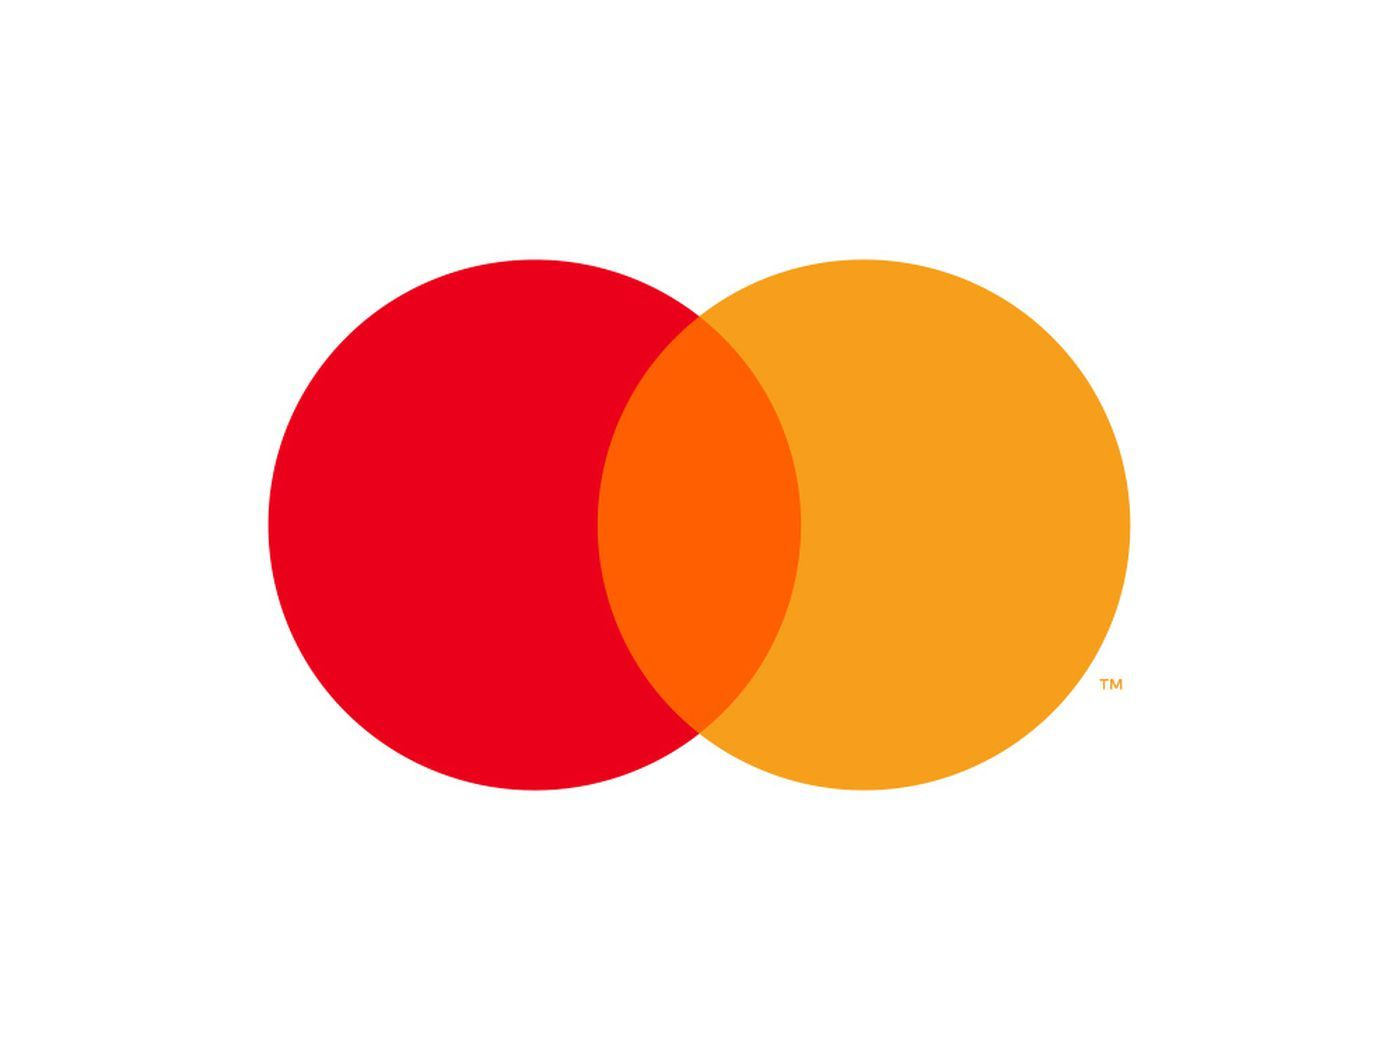 Why Is Mastercard's Sonic Branding Strategy More Than Just Noise?